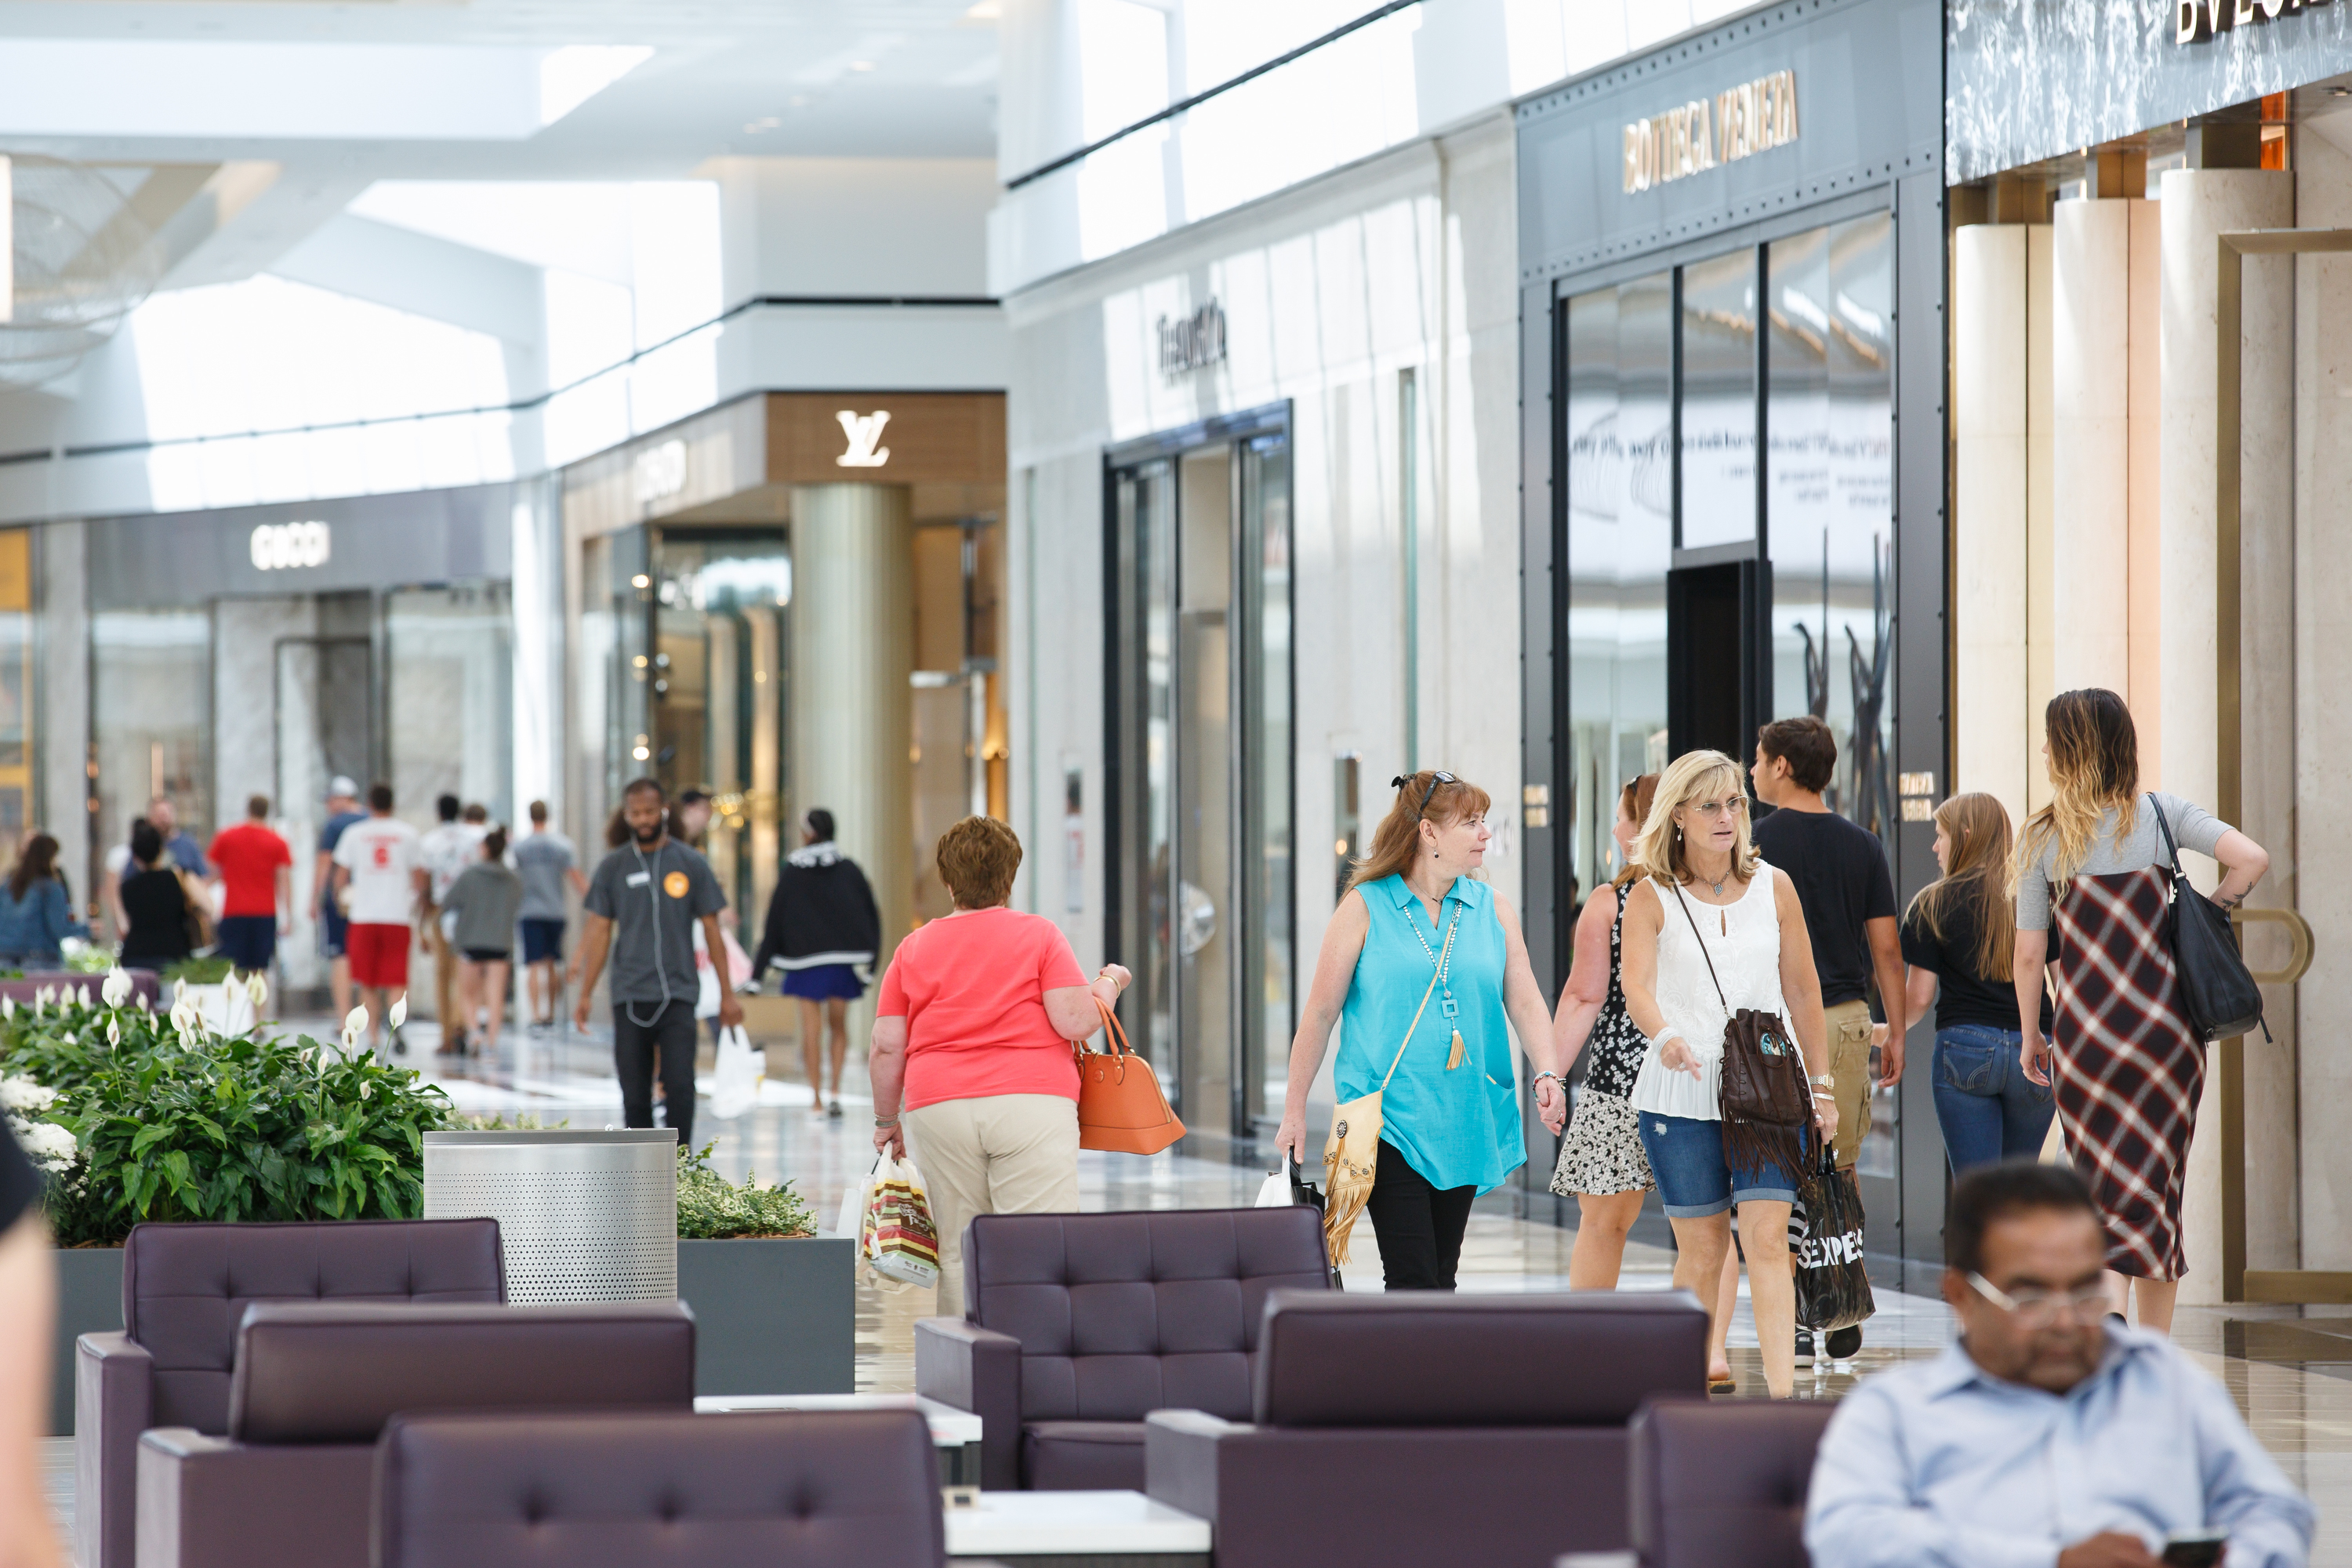 Shoppers in the luxury wing at the King of Prussia Mall, home to about 45 mostly luxury retailers,. JESSICA GRIFFIN / Staff Photographer